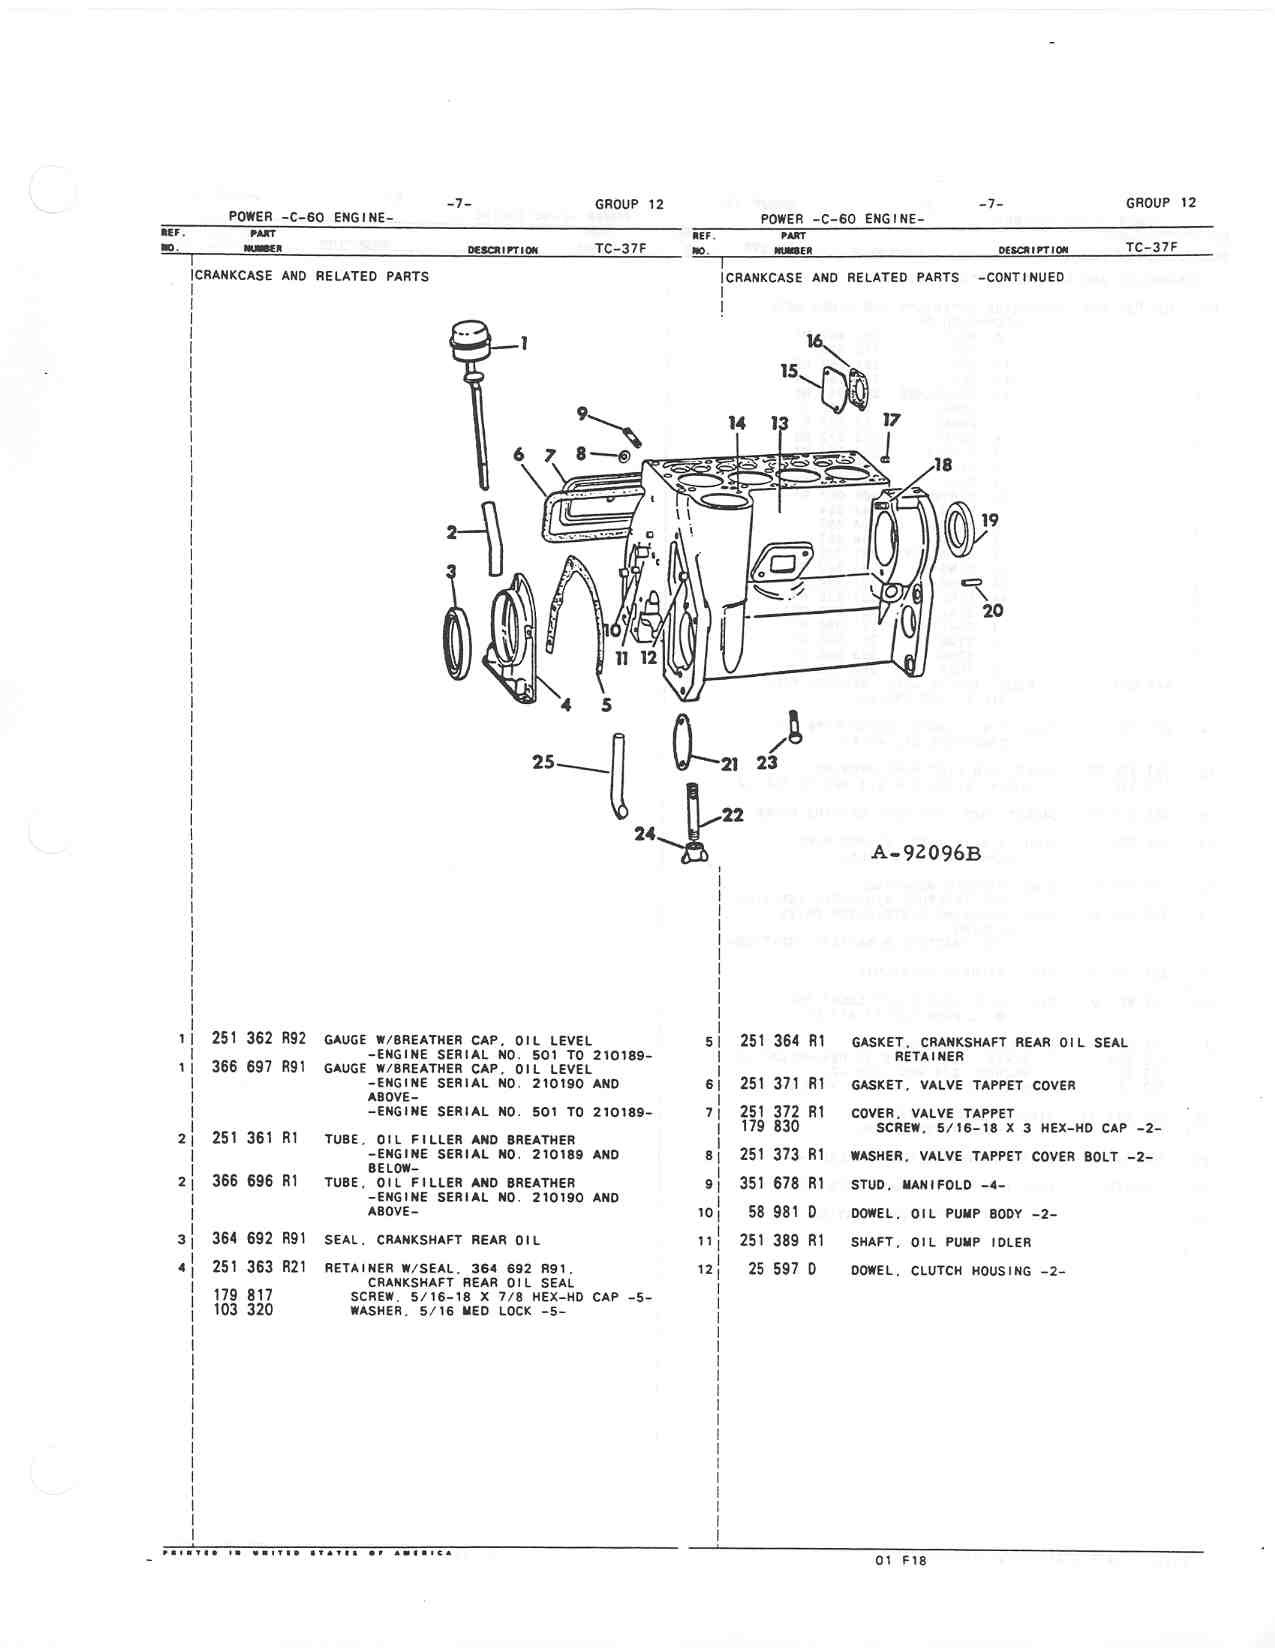 Farmall Cub Parts Diagram Motor - Wiring Diagram M6 on